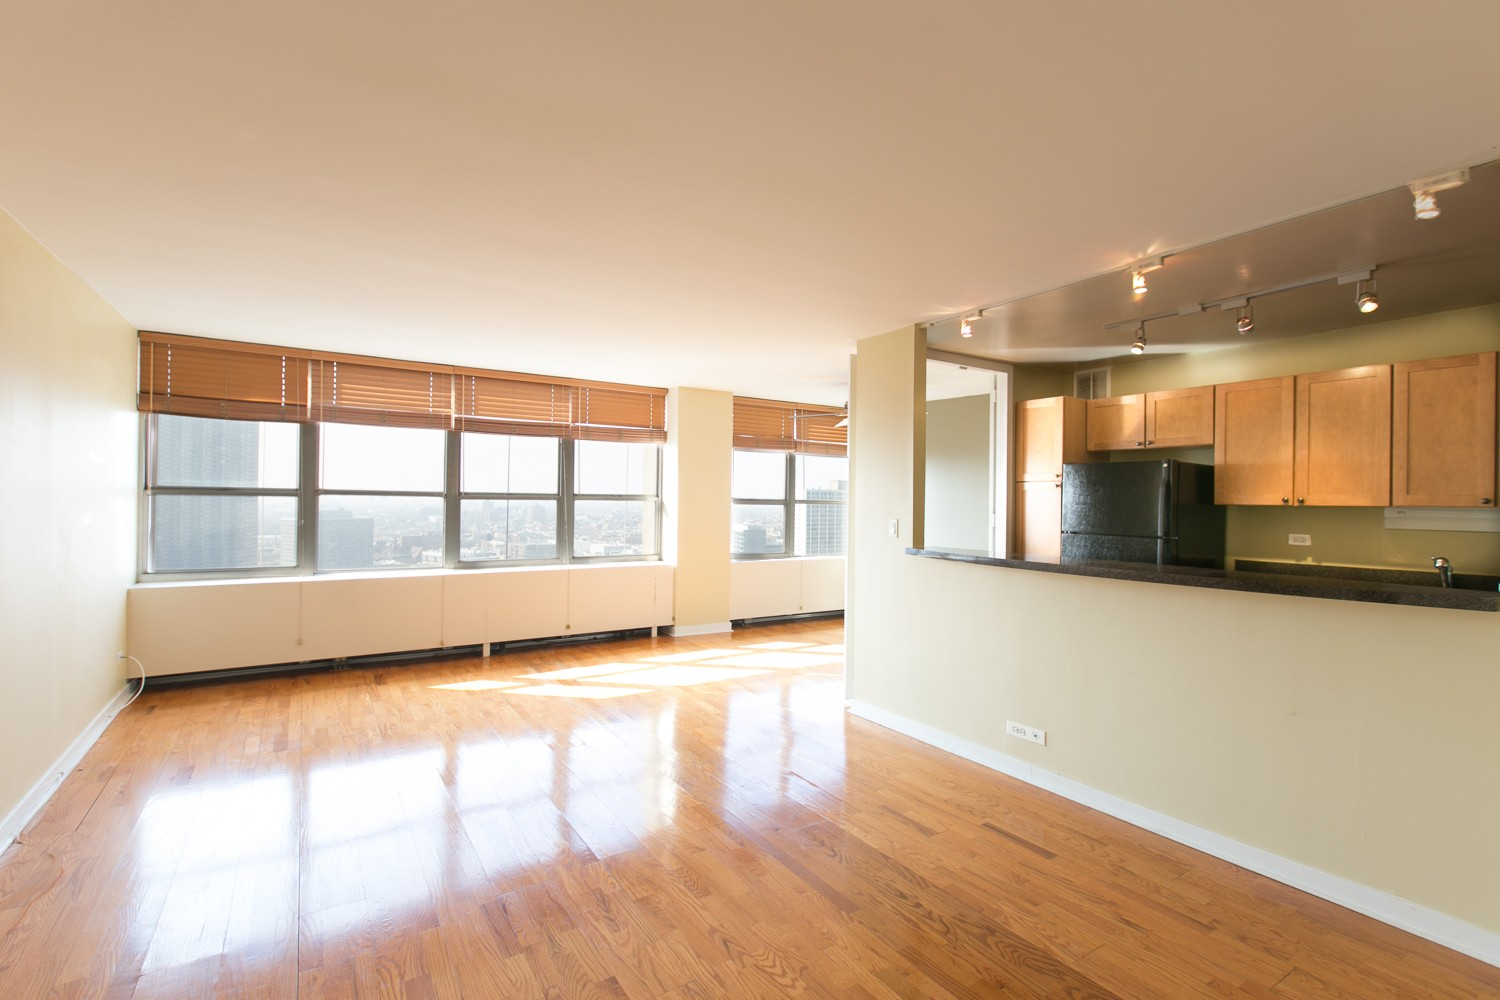 655 West Irving Park Road 2403 Chicago IL 60613 1 Bedroom Apartment For Re